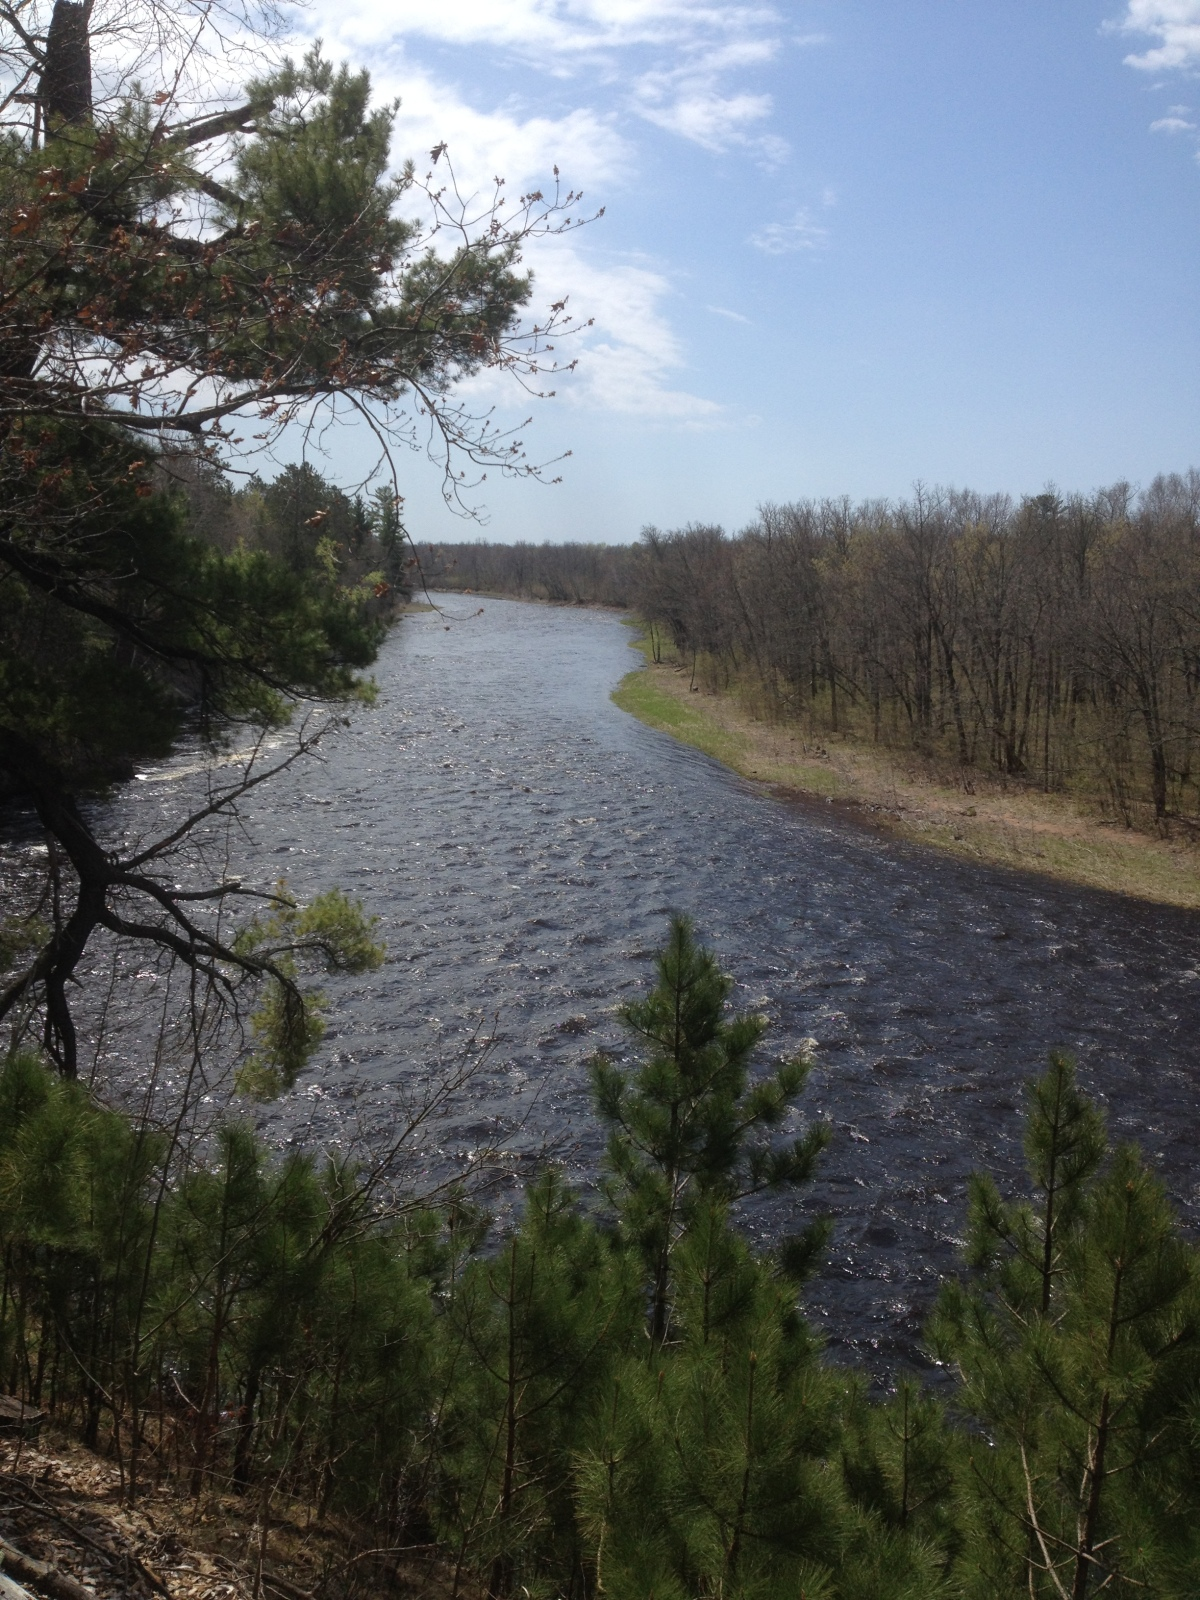 Spring riffles on the Kettle River